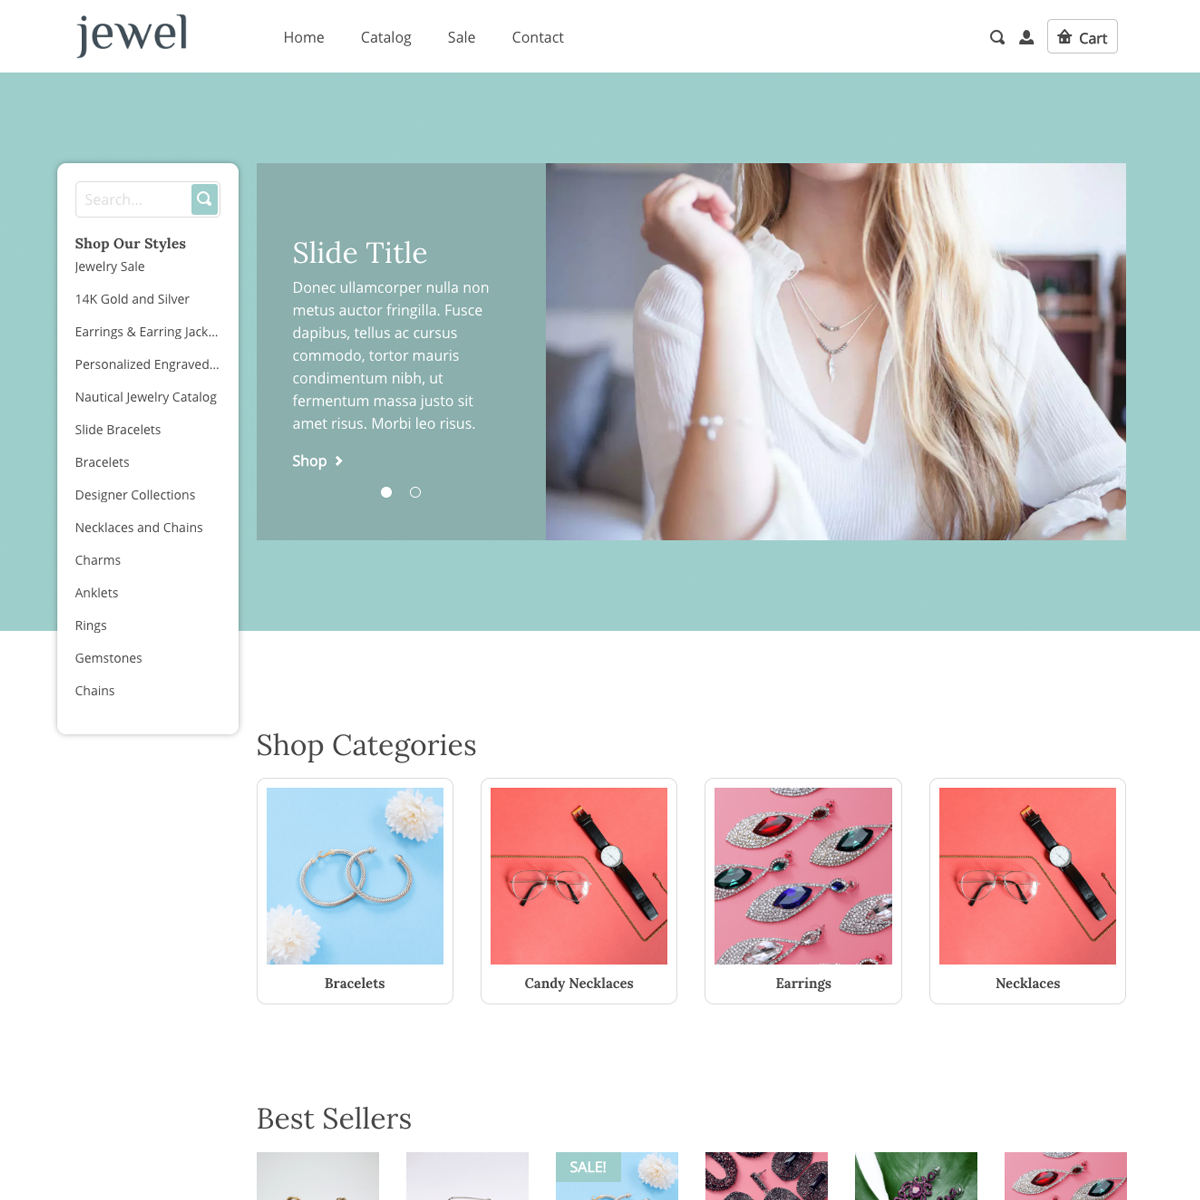 Jewel - Desktop